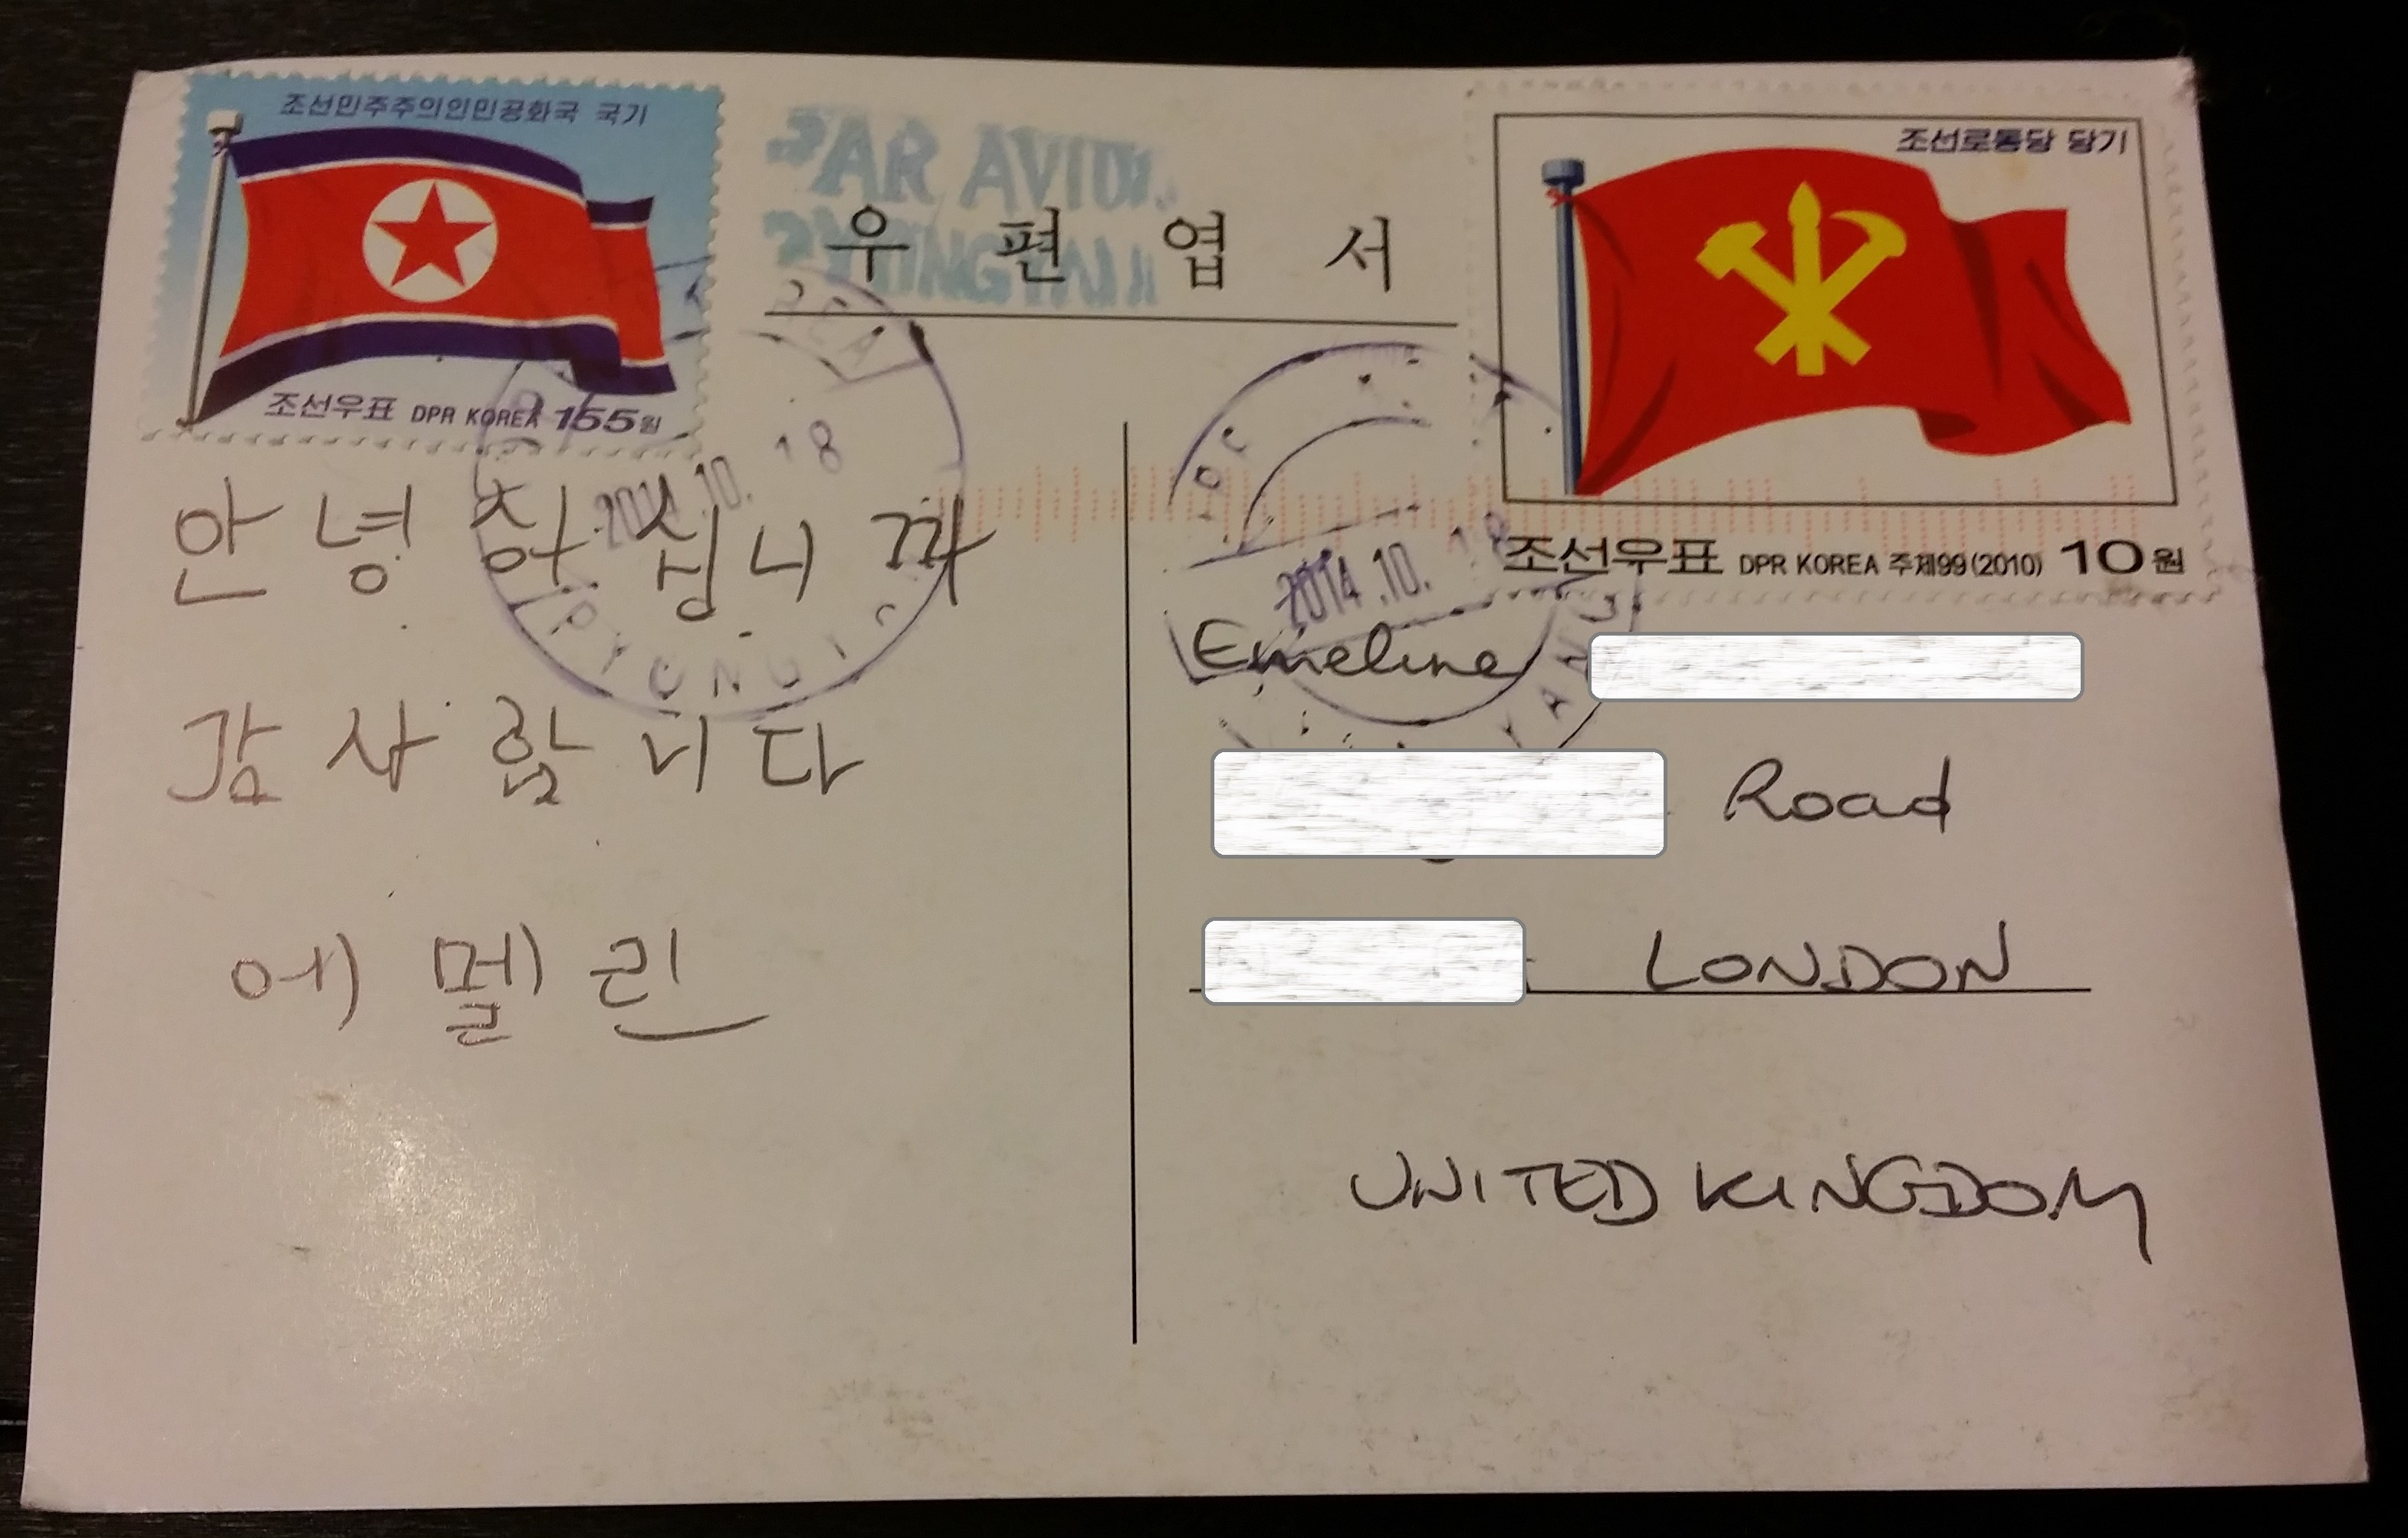 Fullsize Of How To Send A Postcard